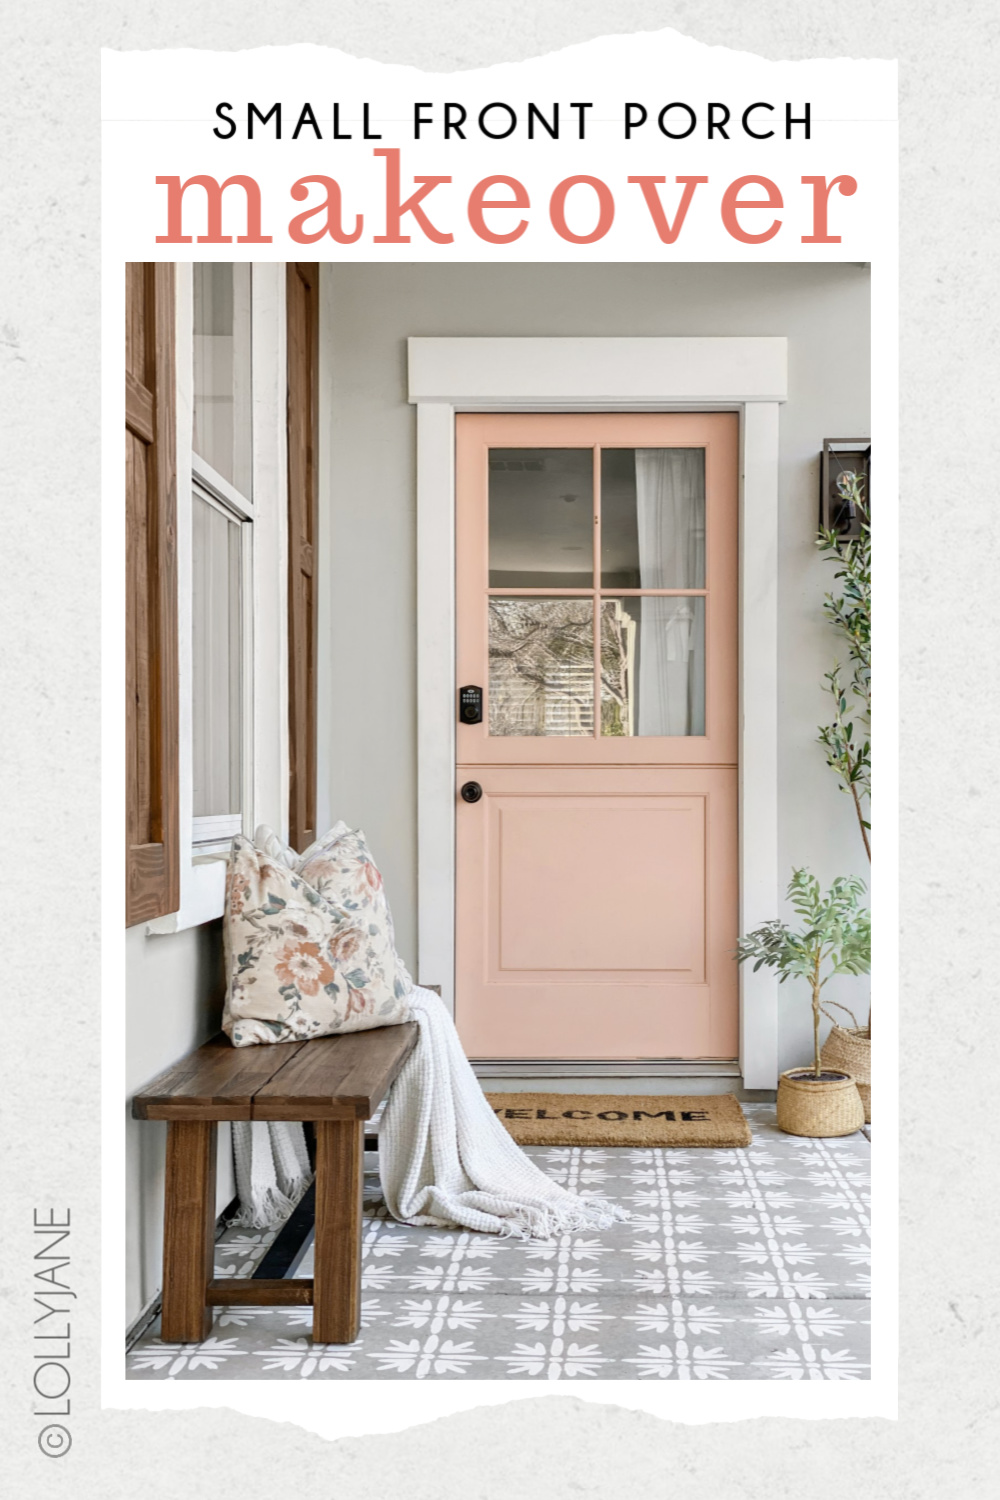 Beautiful Front Porch Makeover, check out the before-- WOW! Classic craftsman style home with a pop of pink, so good! #diy #stencil #Dutchdoor #pinkdoor #makeover #porchdecor #porchmakeover